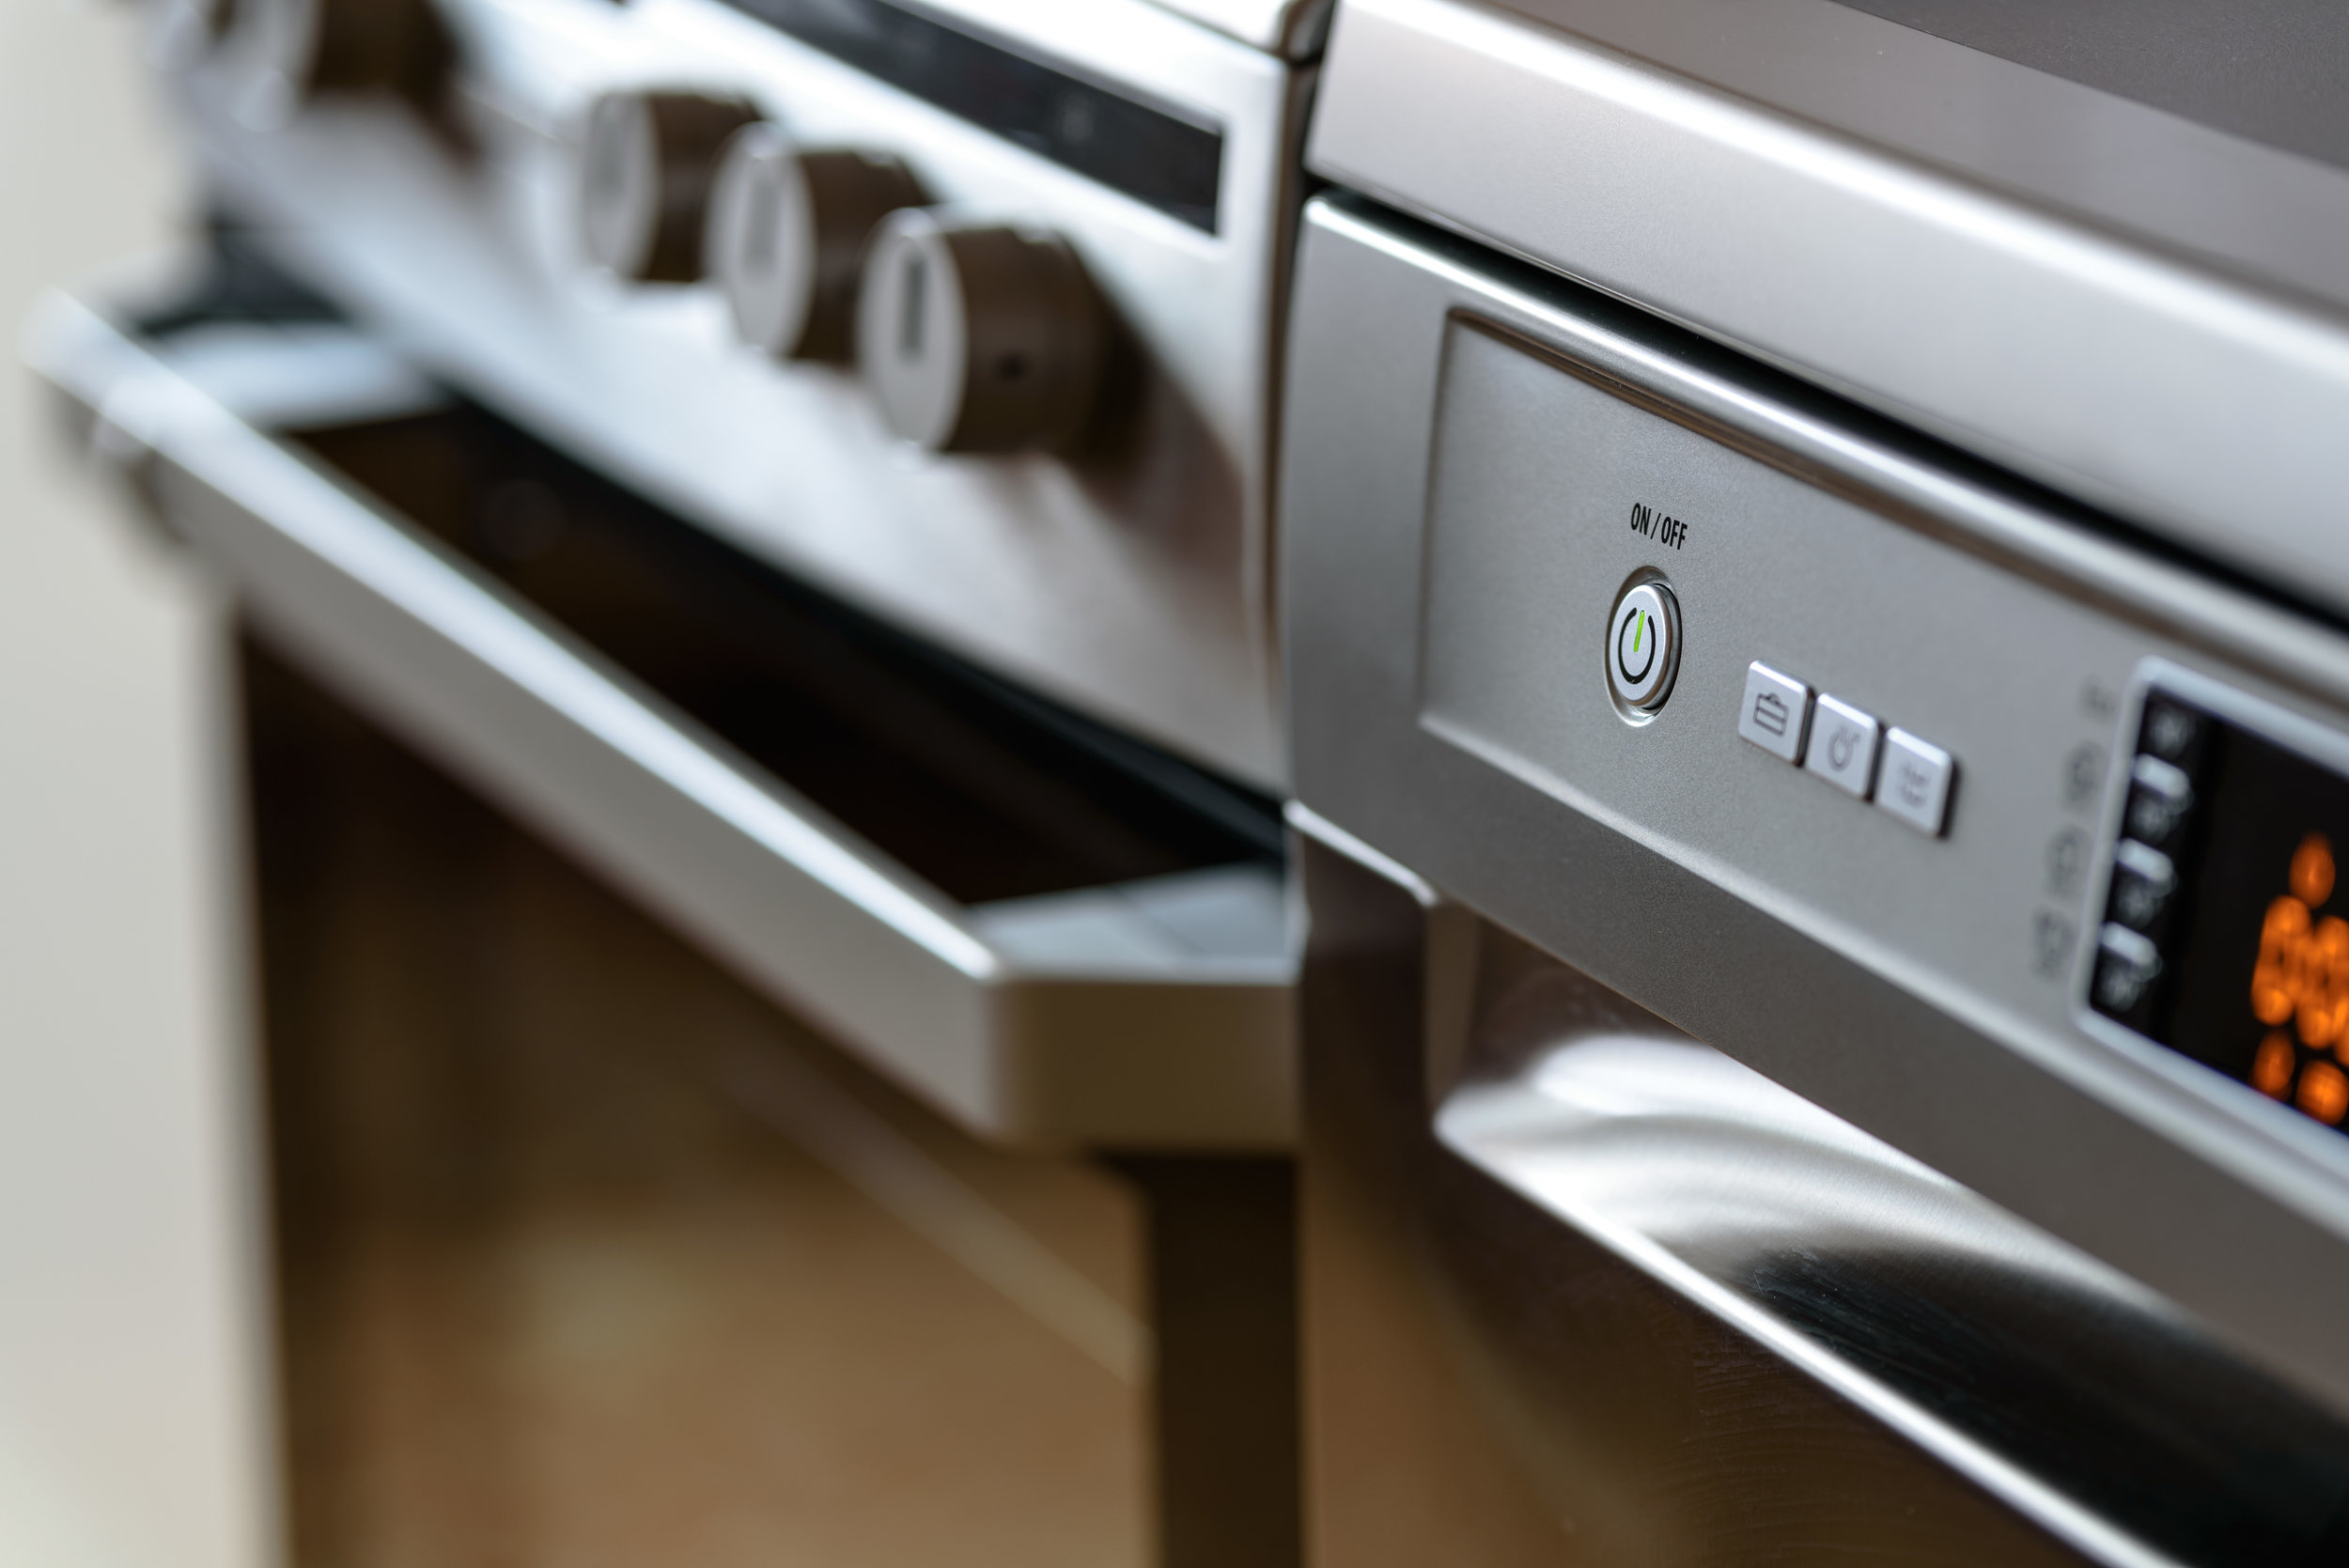 Keep everything in top working order - Ensuring all your appliances are in top working order, and tending to them when they need minor repairs, will save you stress and money in the long run.